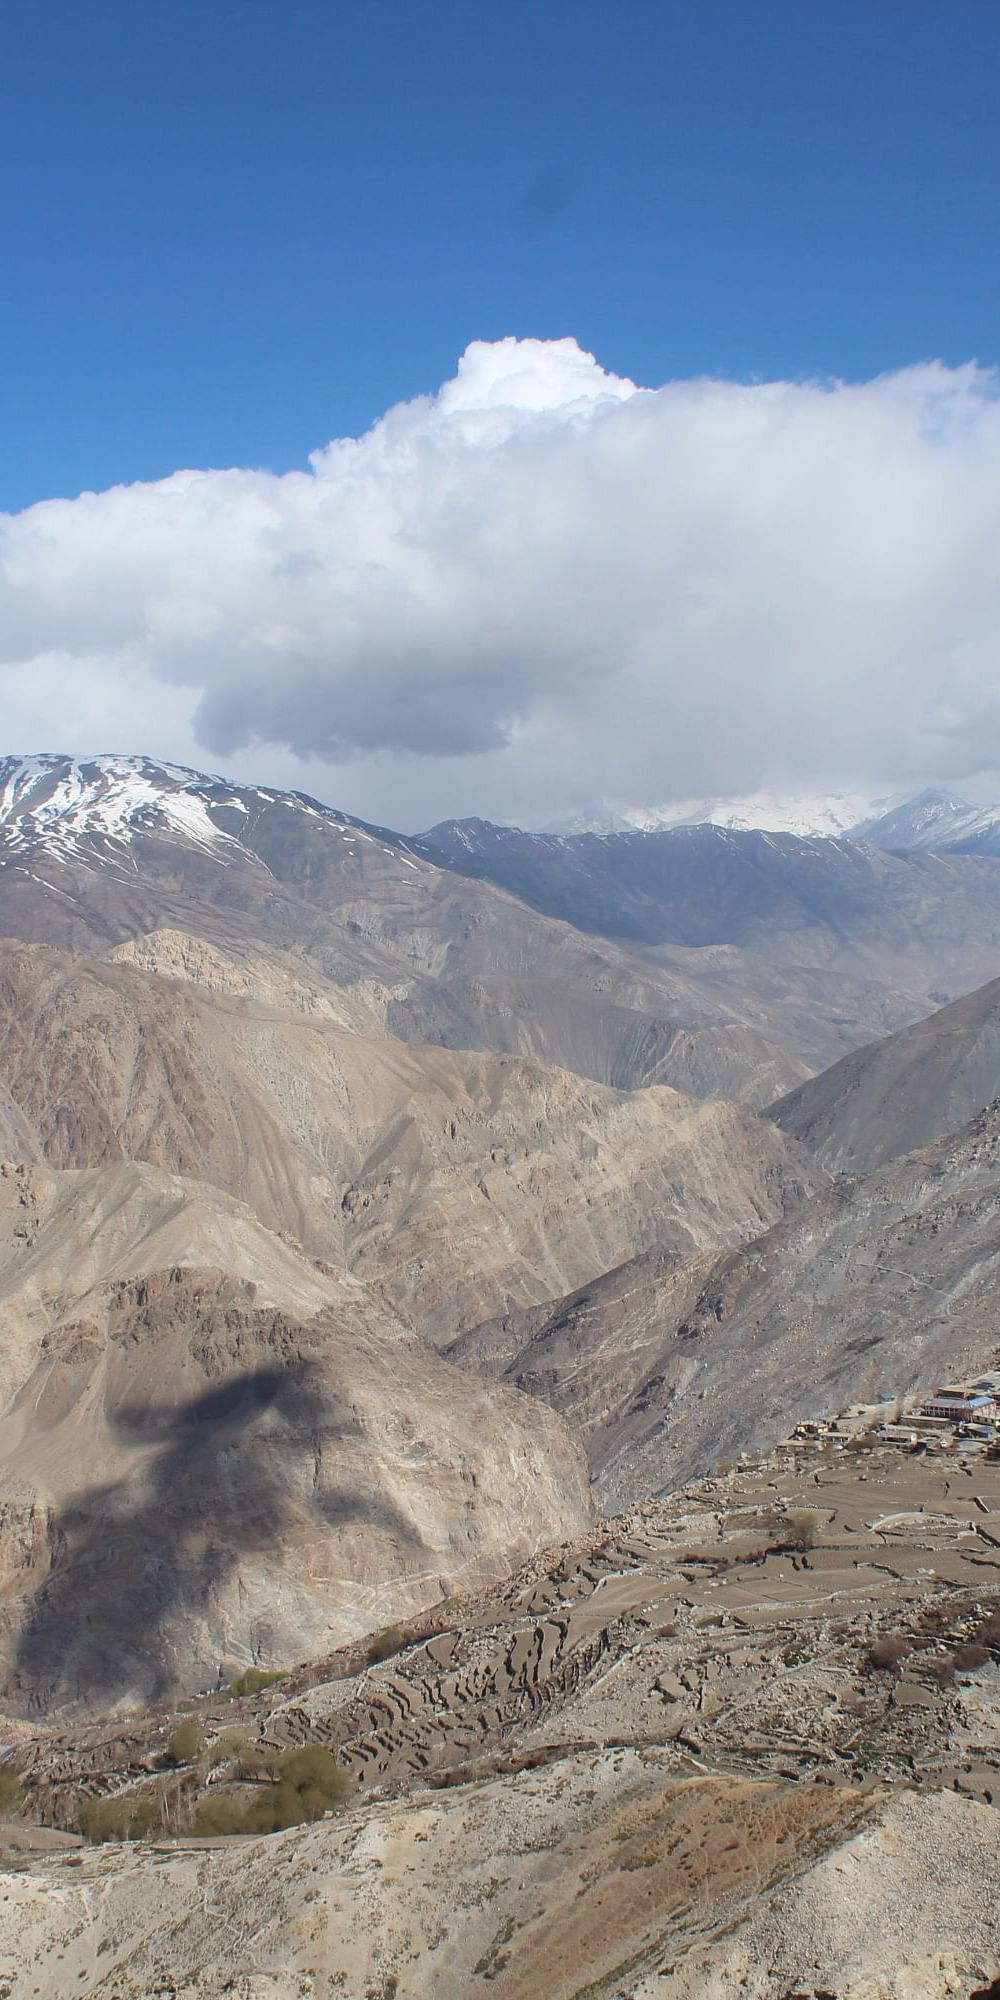 Changing use of ecosystem services along a rural-urban continuum in the Indian Trans-Himalayas